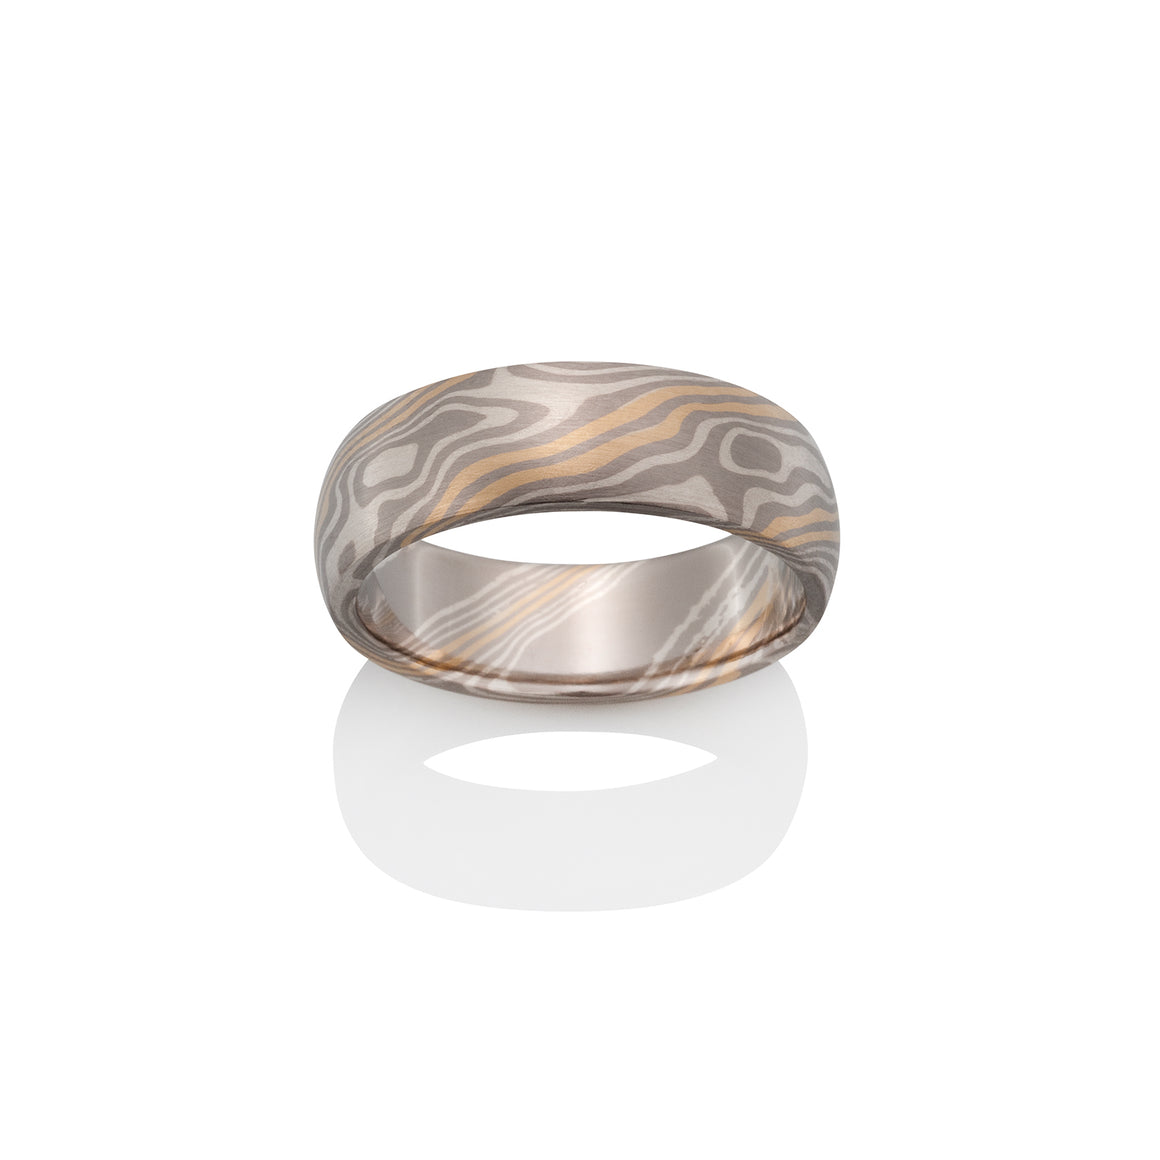 Chris Ploof Beech Pd500, 18K Yellow Gold and Silver Mokume Ring